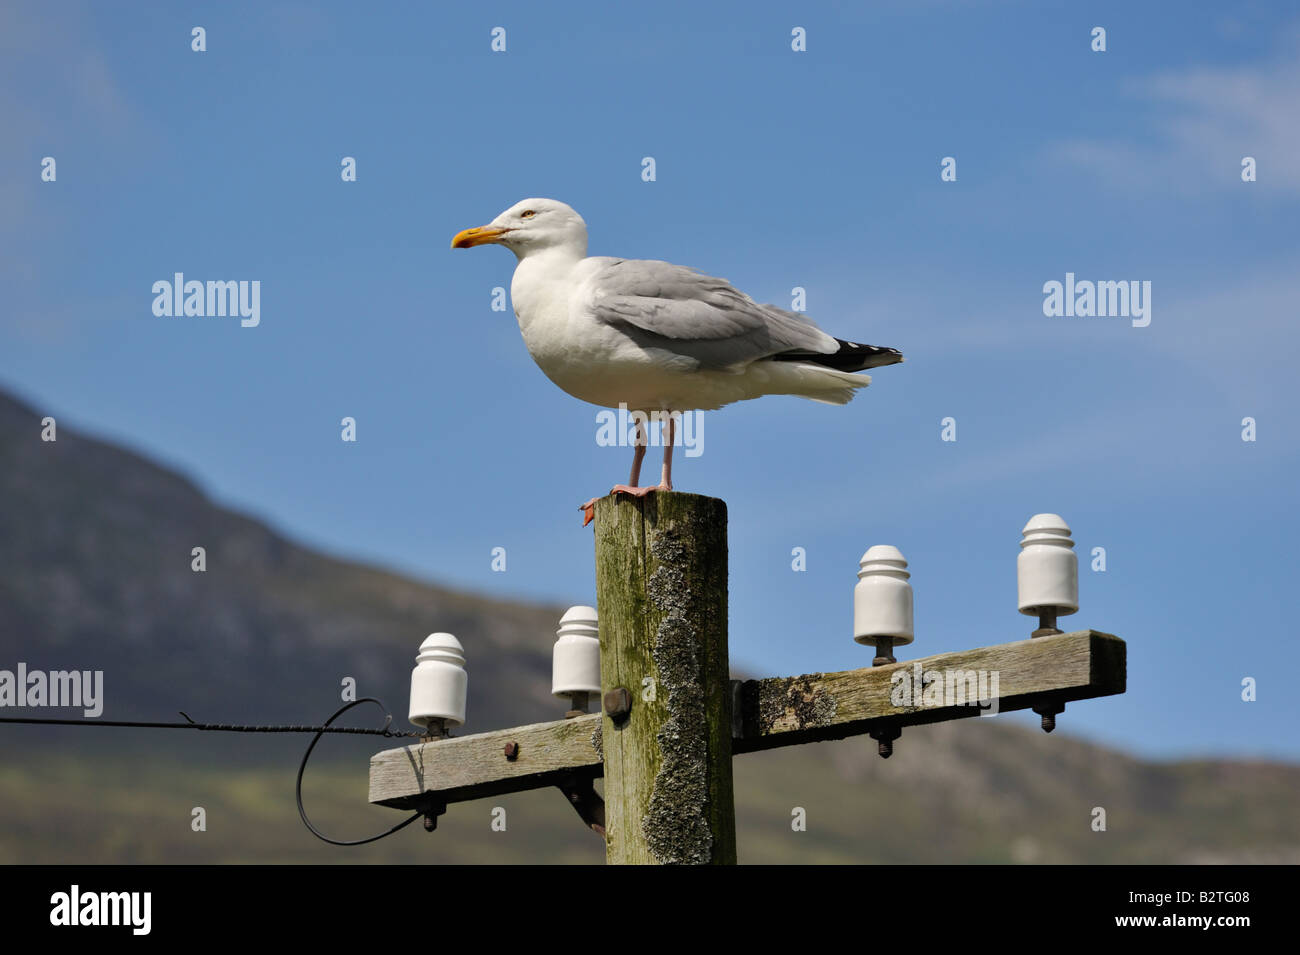 herring-gull-larus-argentatus-pontoppidan-perching-on-an-old-telegraph-B2TG08.jpg